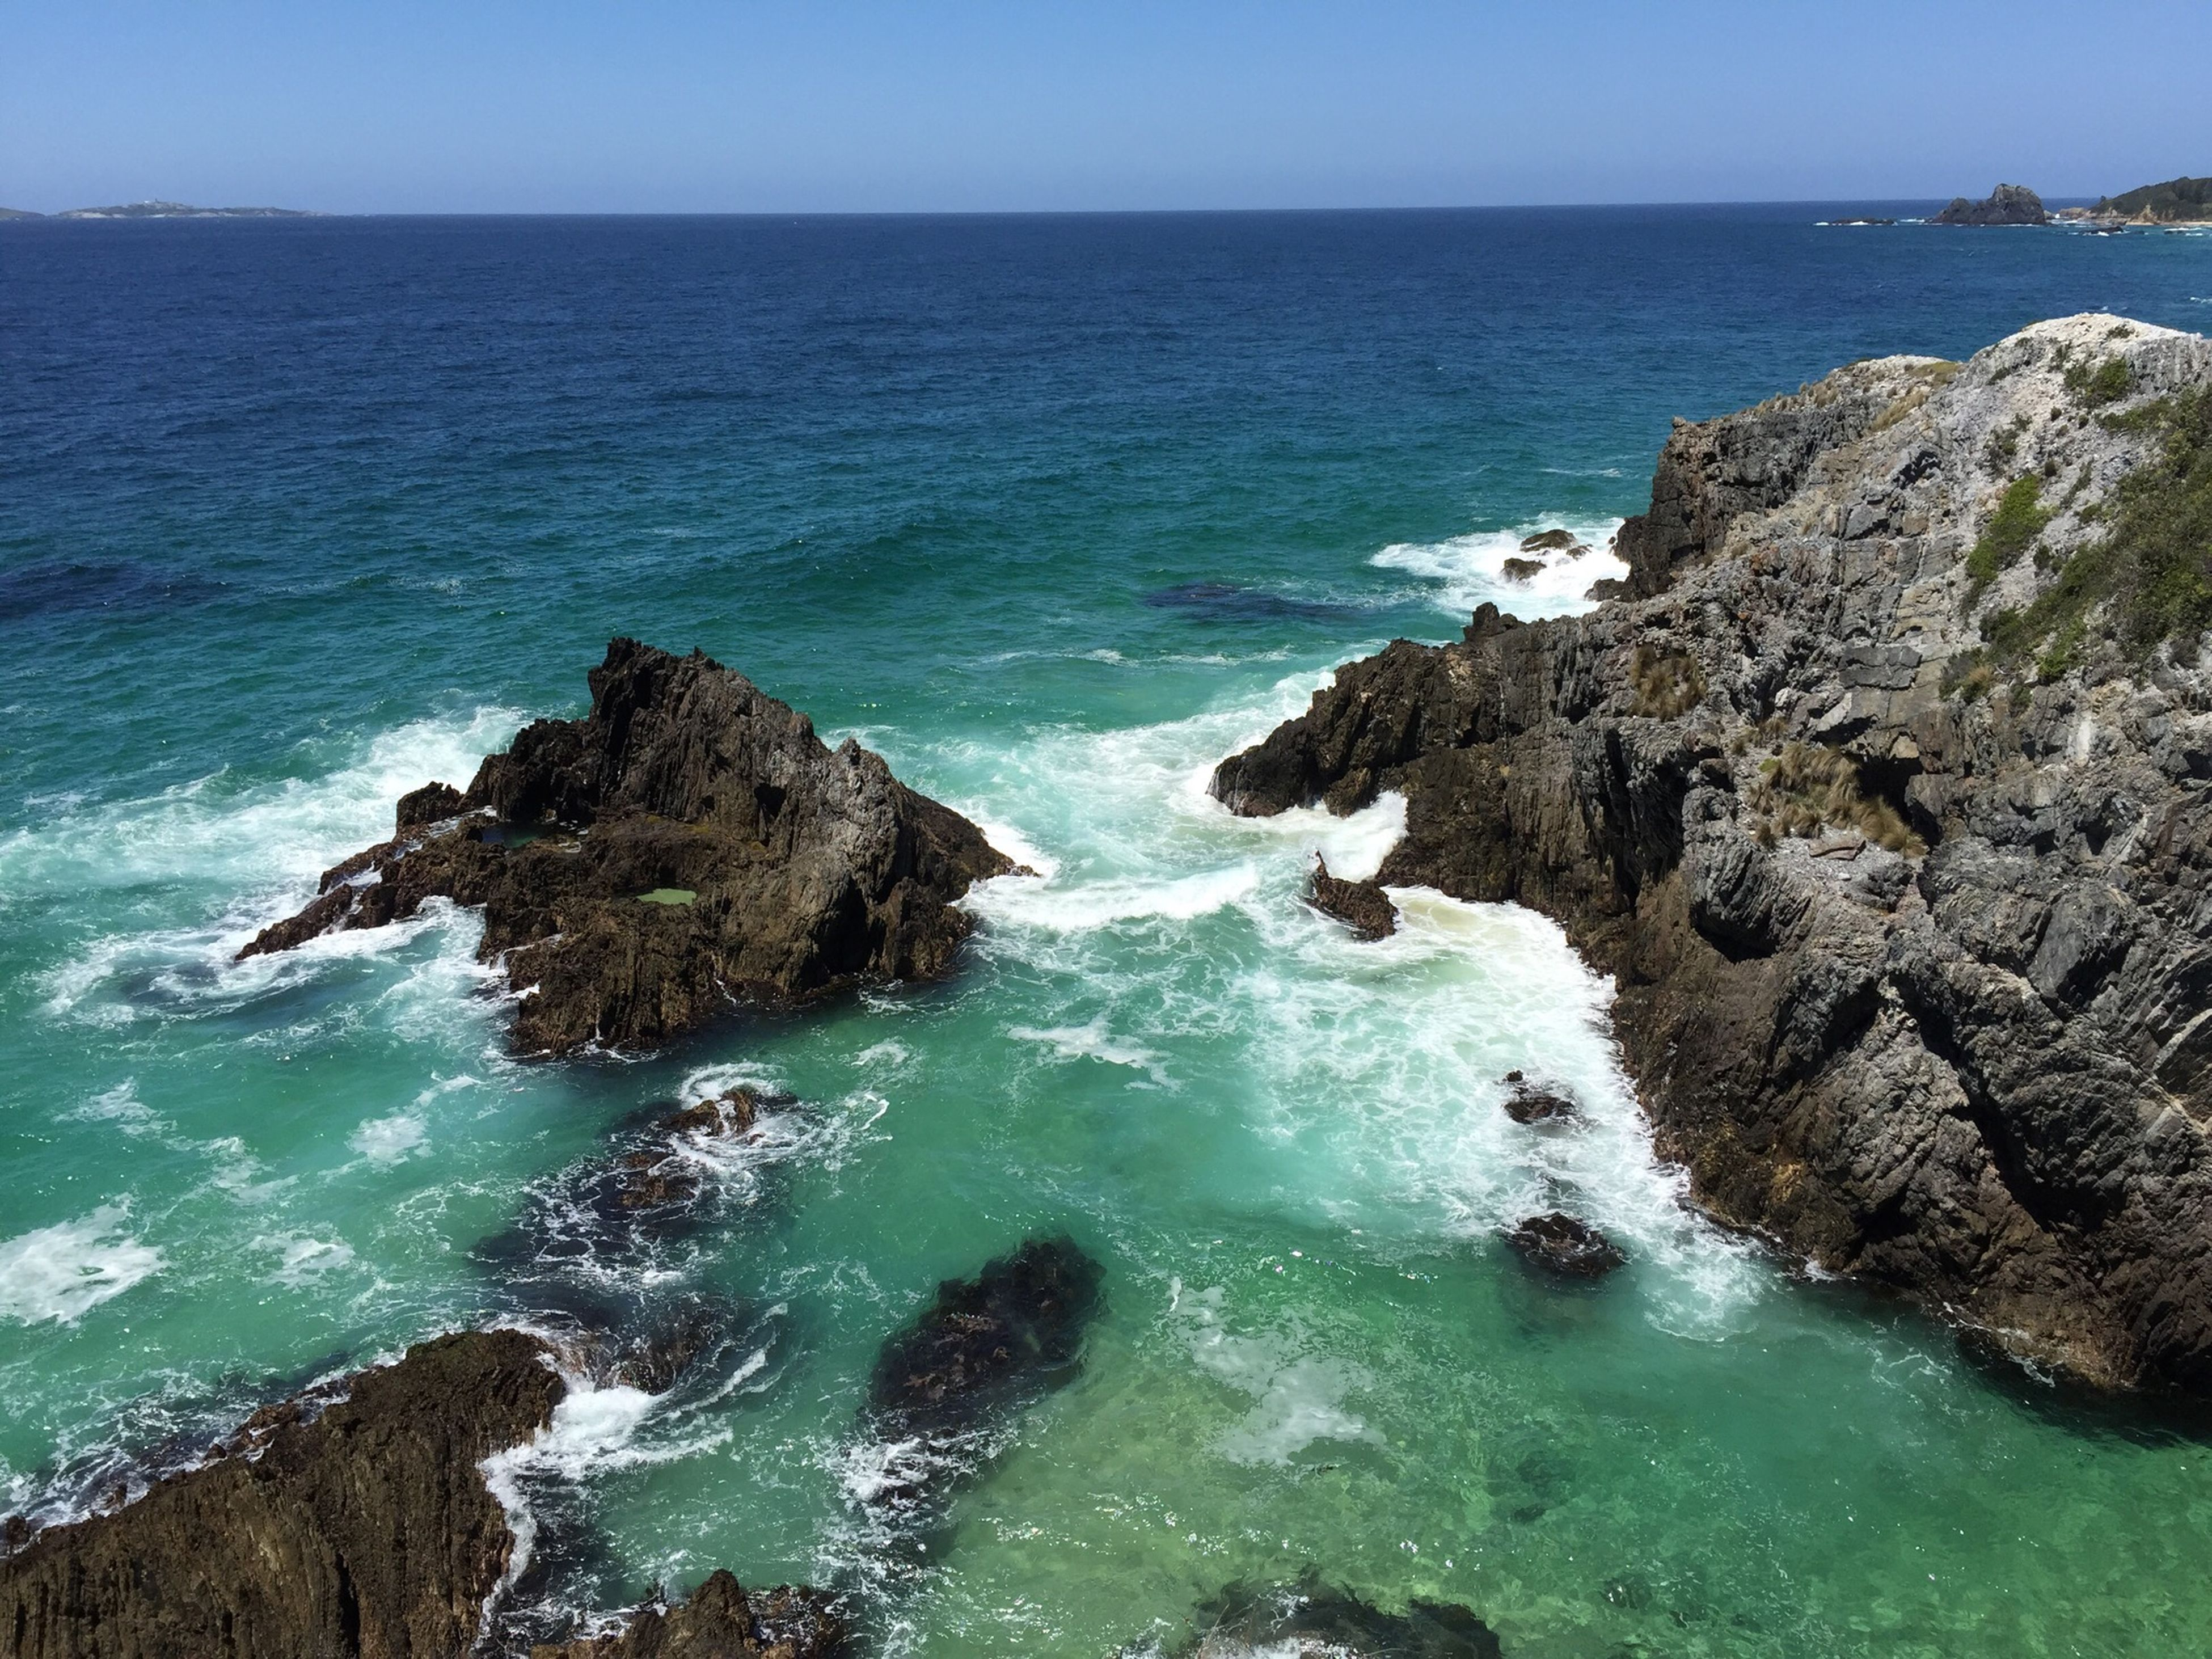 sea, water, horizon over water, scenics, beauty in nature, rock formation, tranquil scene, tranquility, rock - object, nature, rock, cliff, blue, coastline, idyllic, high angle view, seascape, clear sky, wave, day